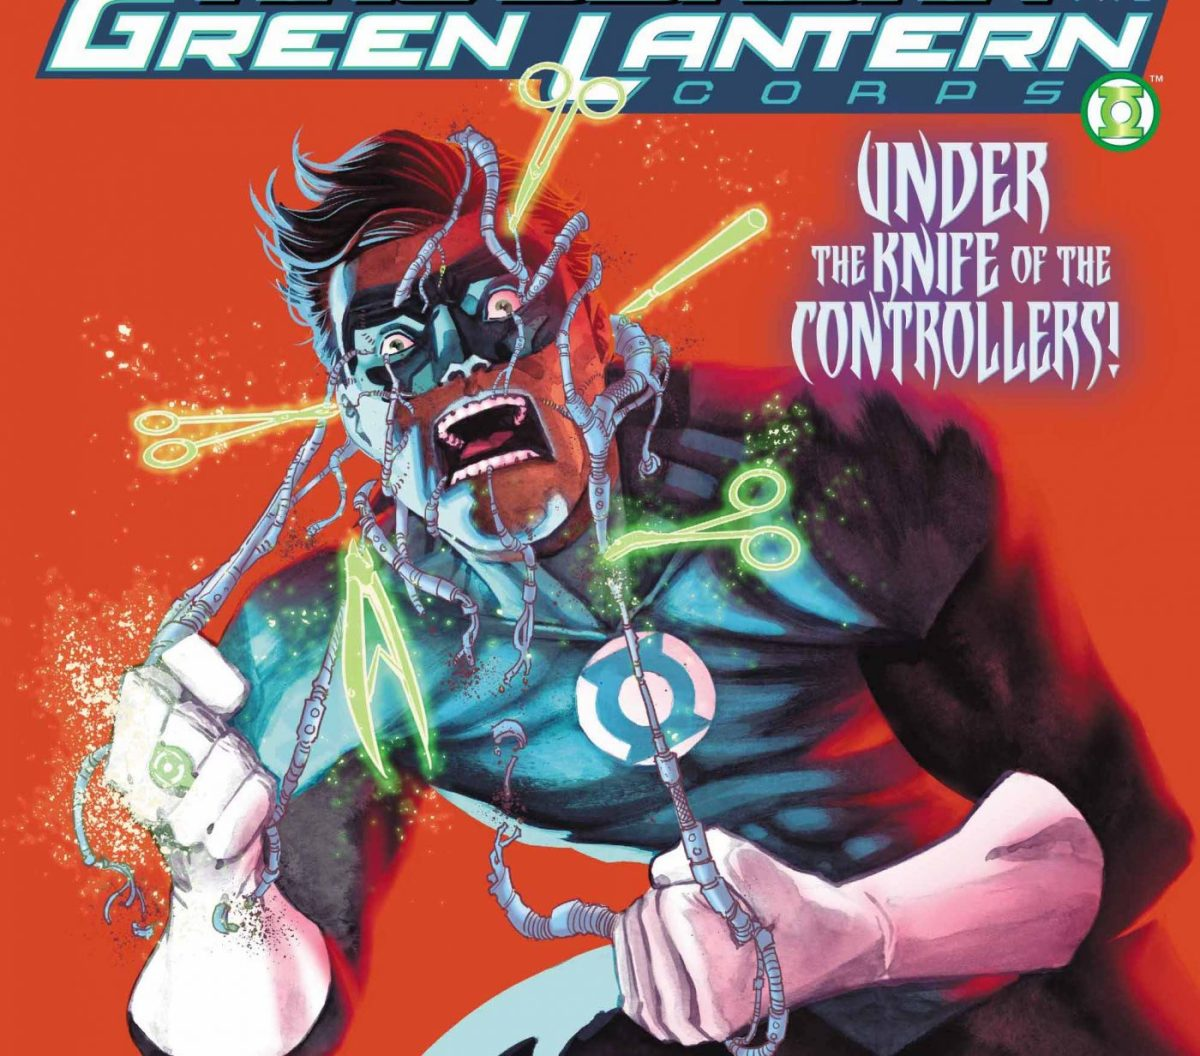 [EXCLUSIVE] DC Preview: Hal Jordan and the Green Lantern Corps #33